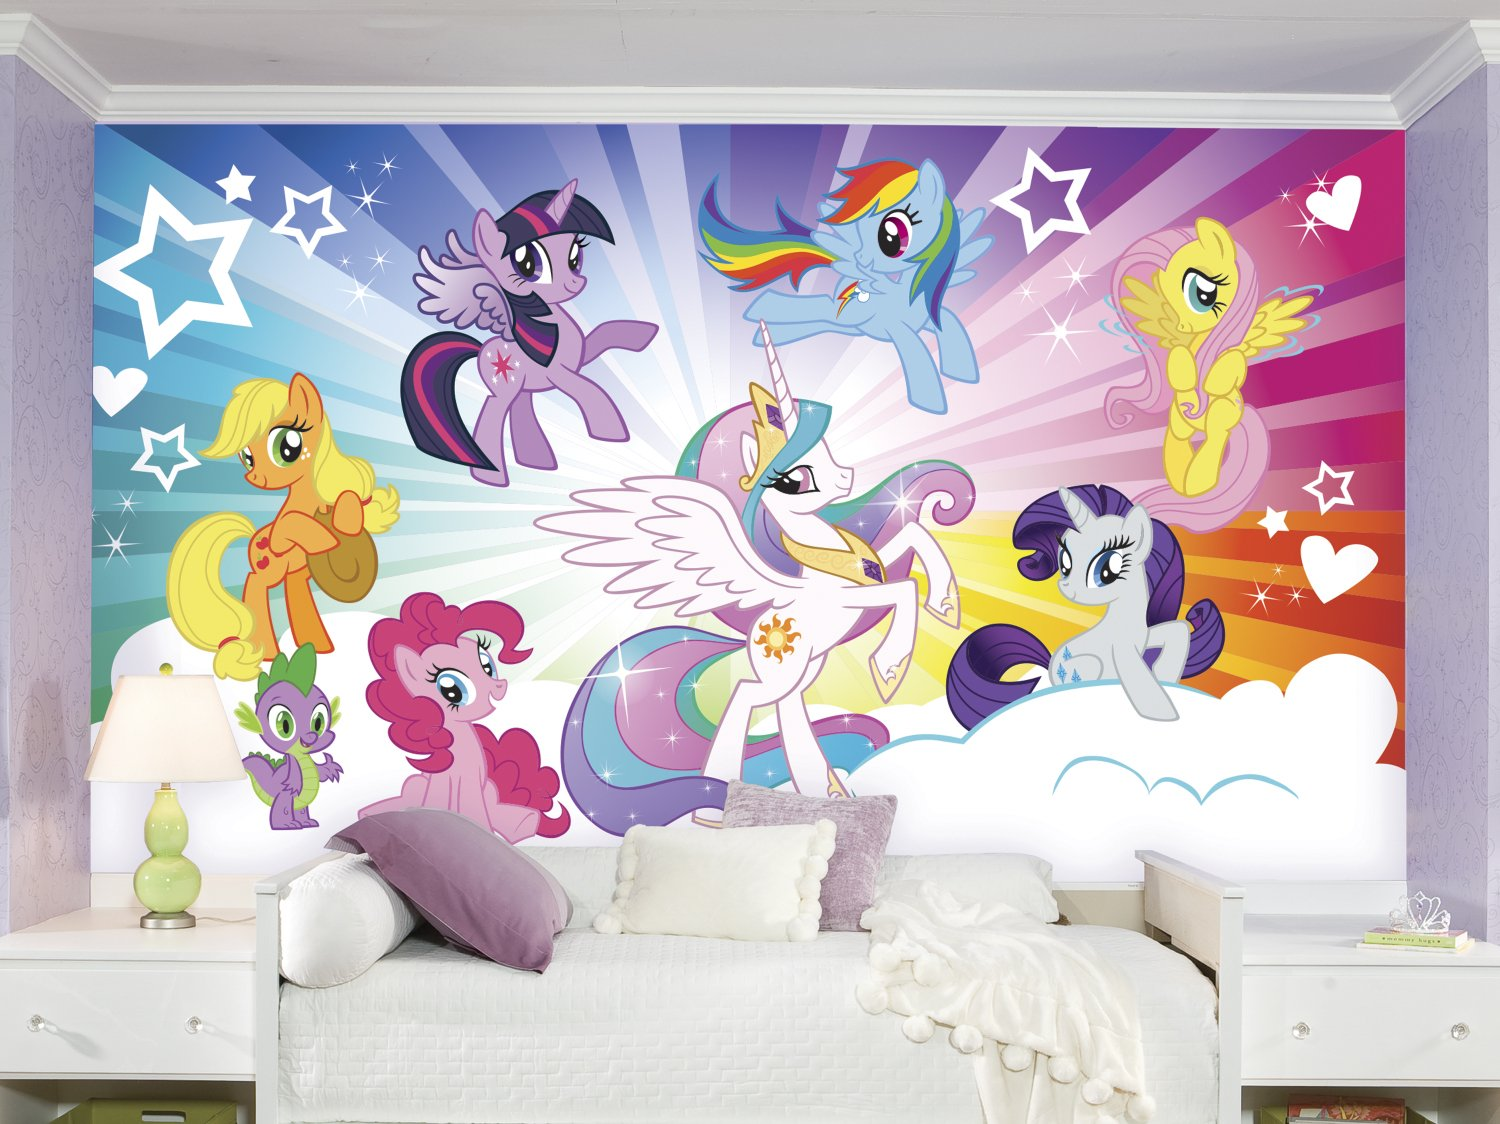 RoomMates JL1335M My Little Pony Cloud Water Activated Removable Wallpaper Mural - 10.5 ft. x 6 ft.